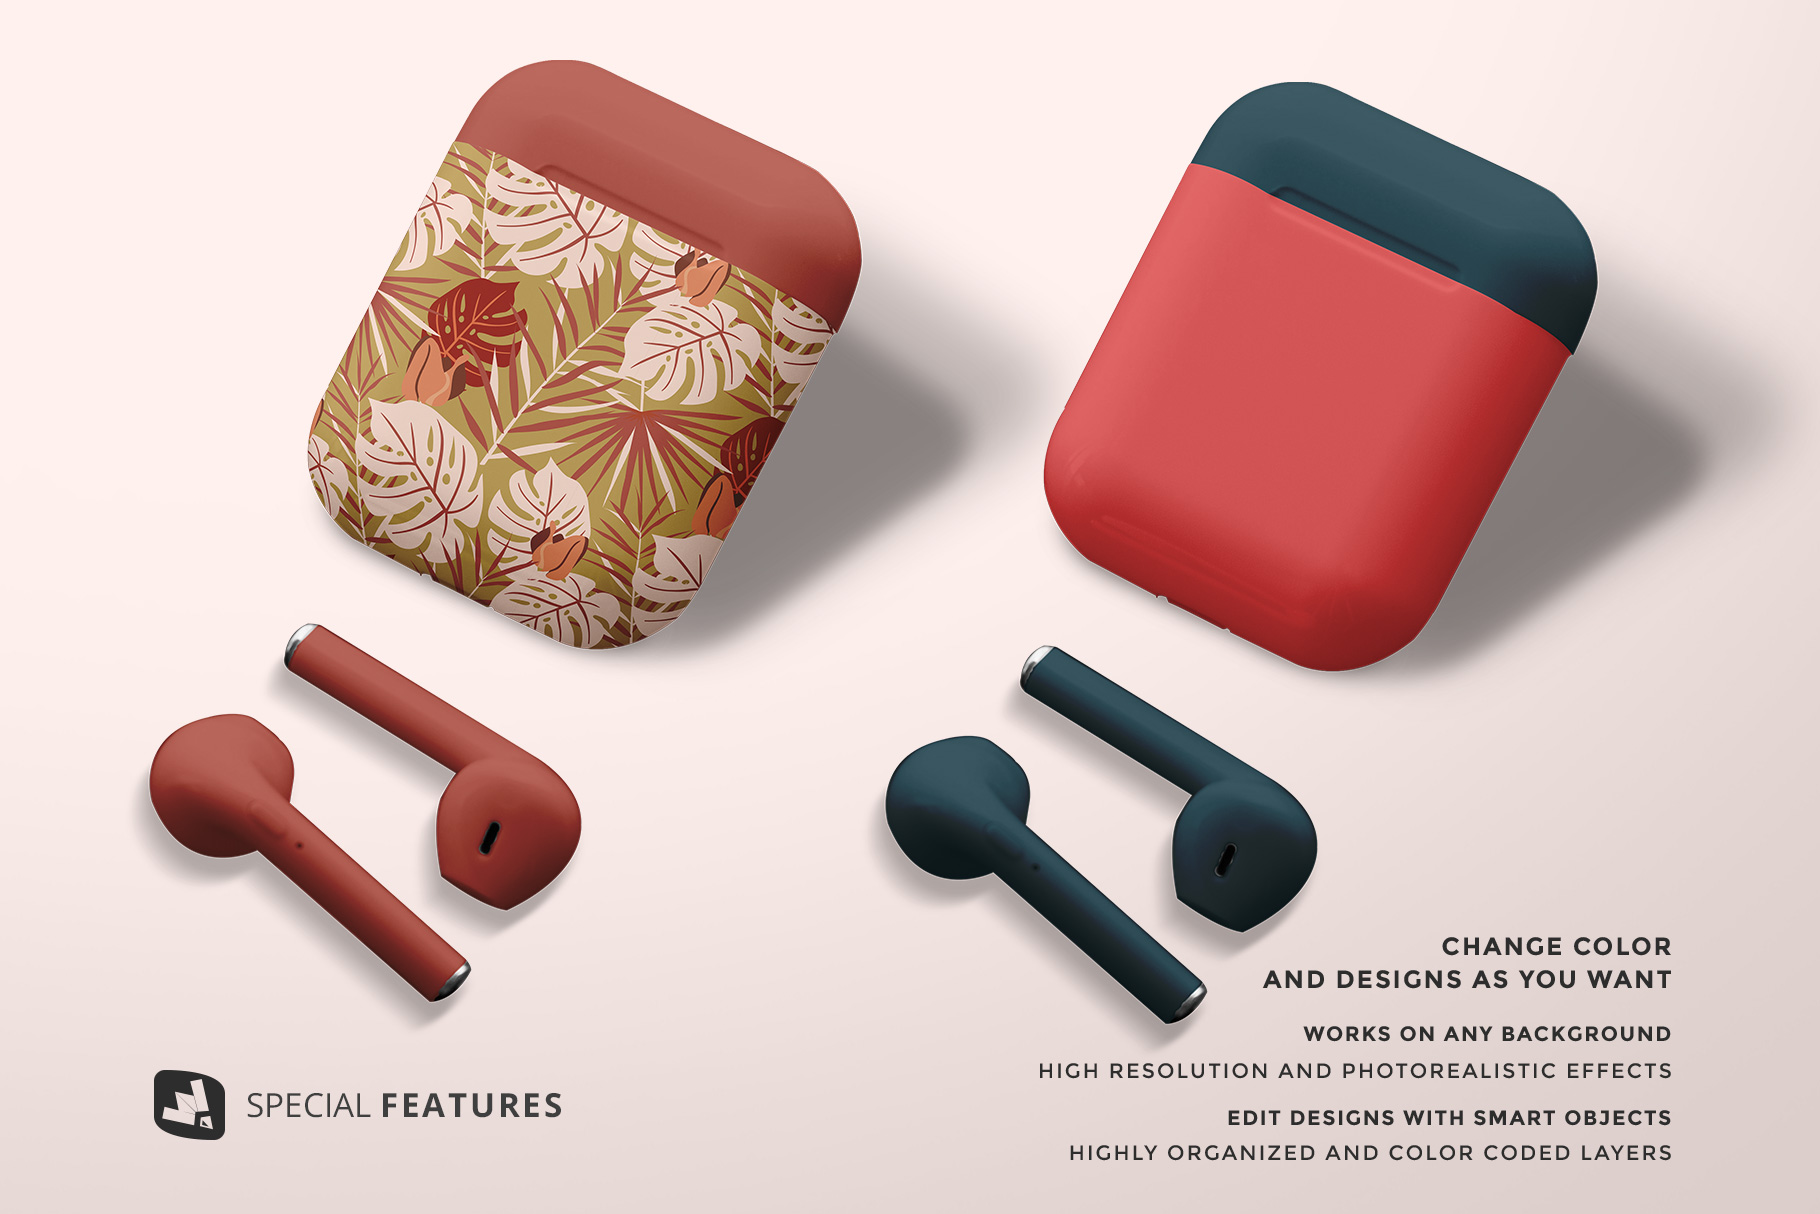 special features of the airpod case mockup